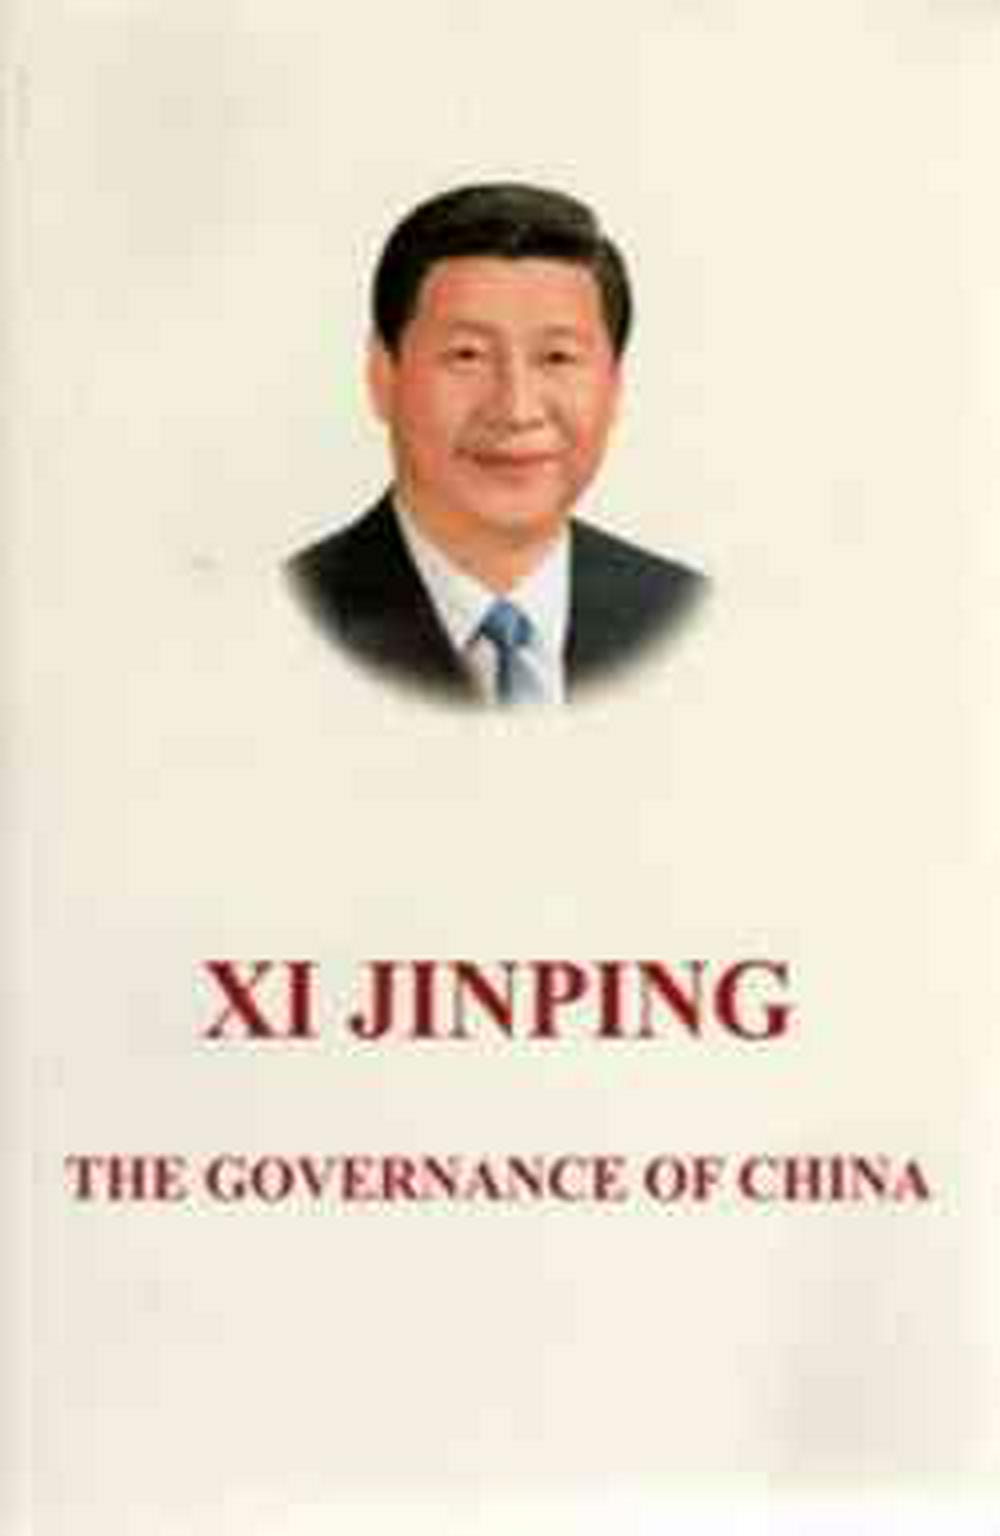 The Governance of China by Xi Jinping, ISBN: 9787119090573